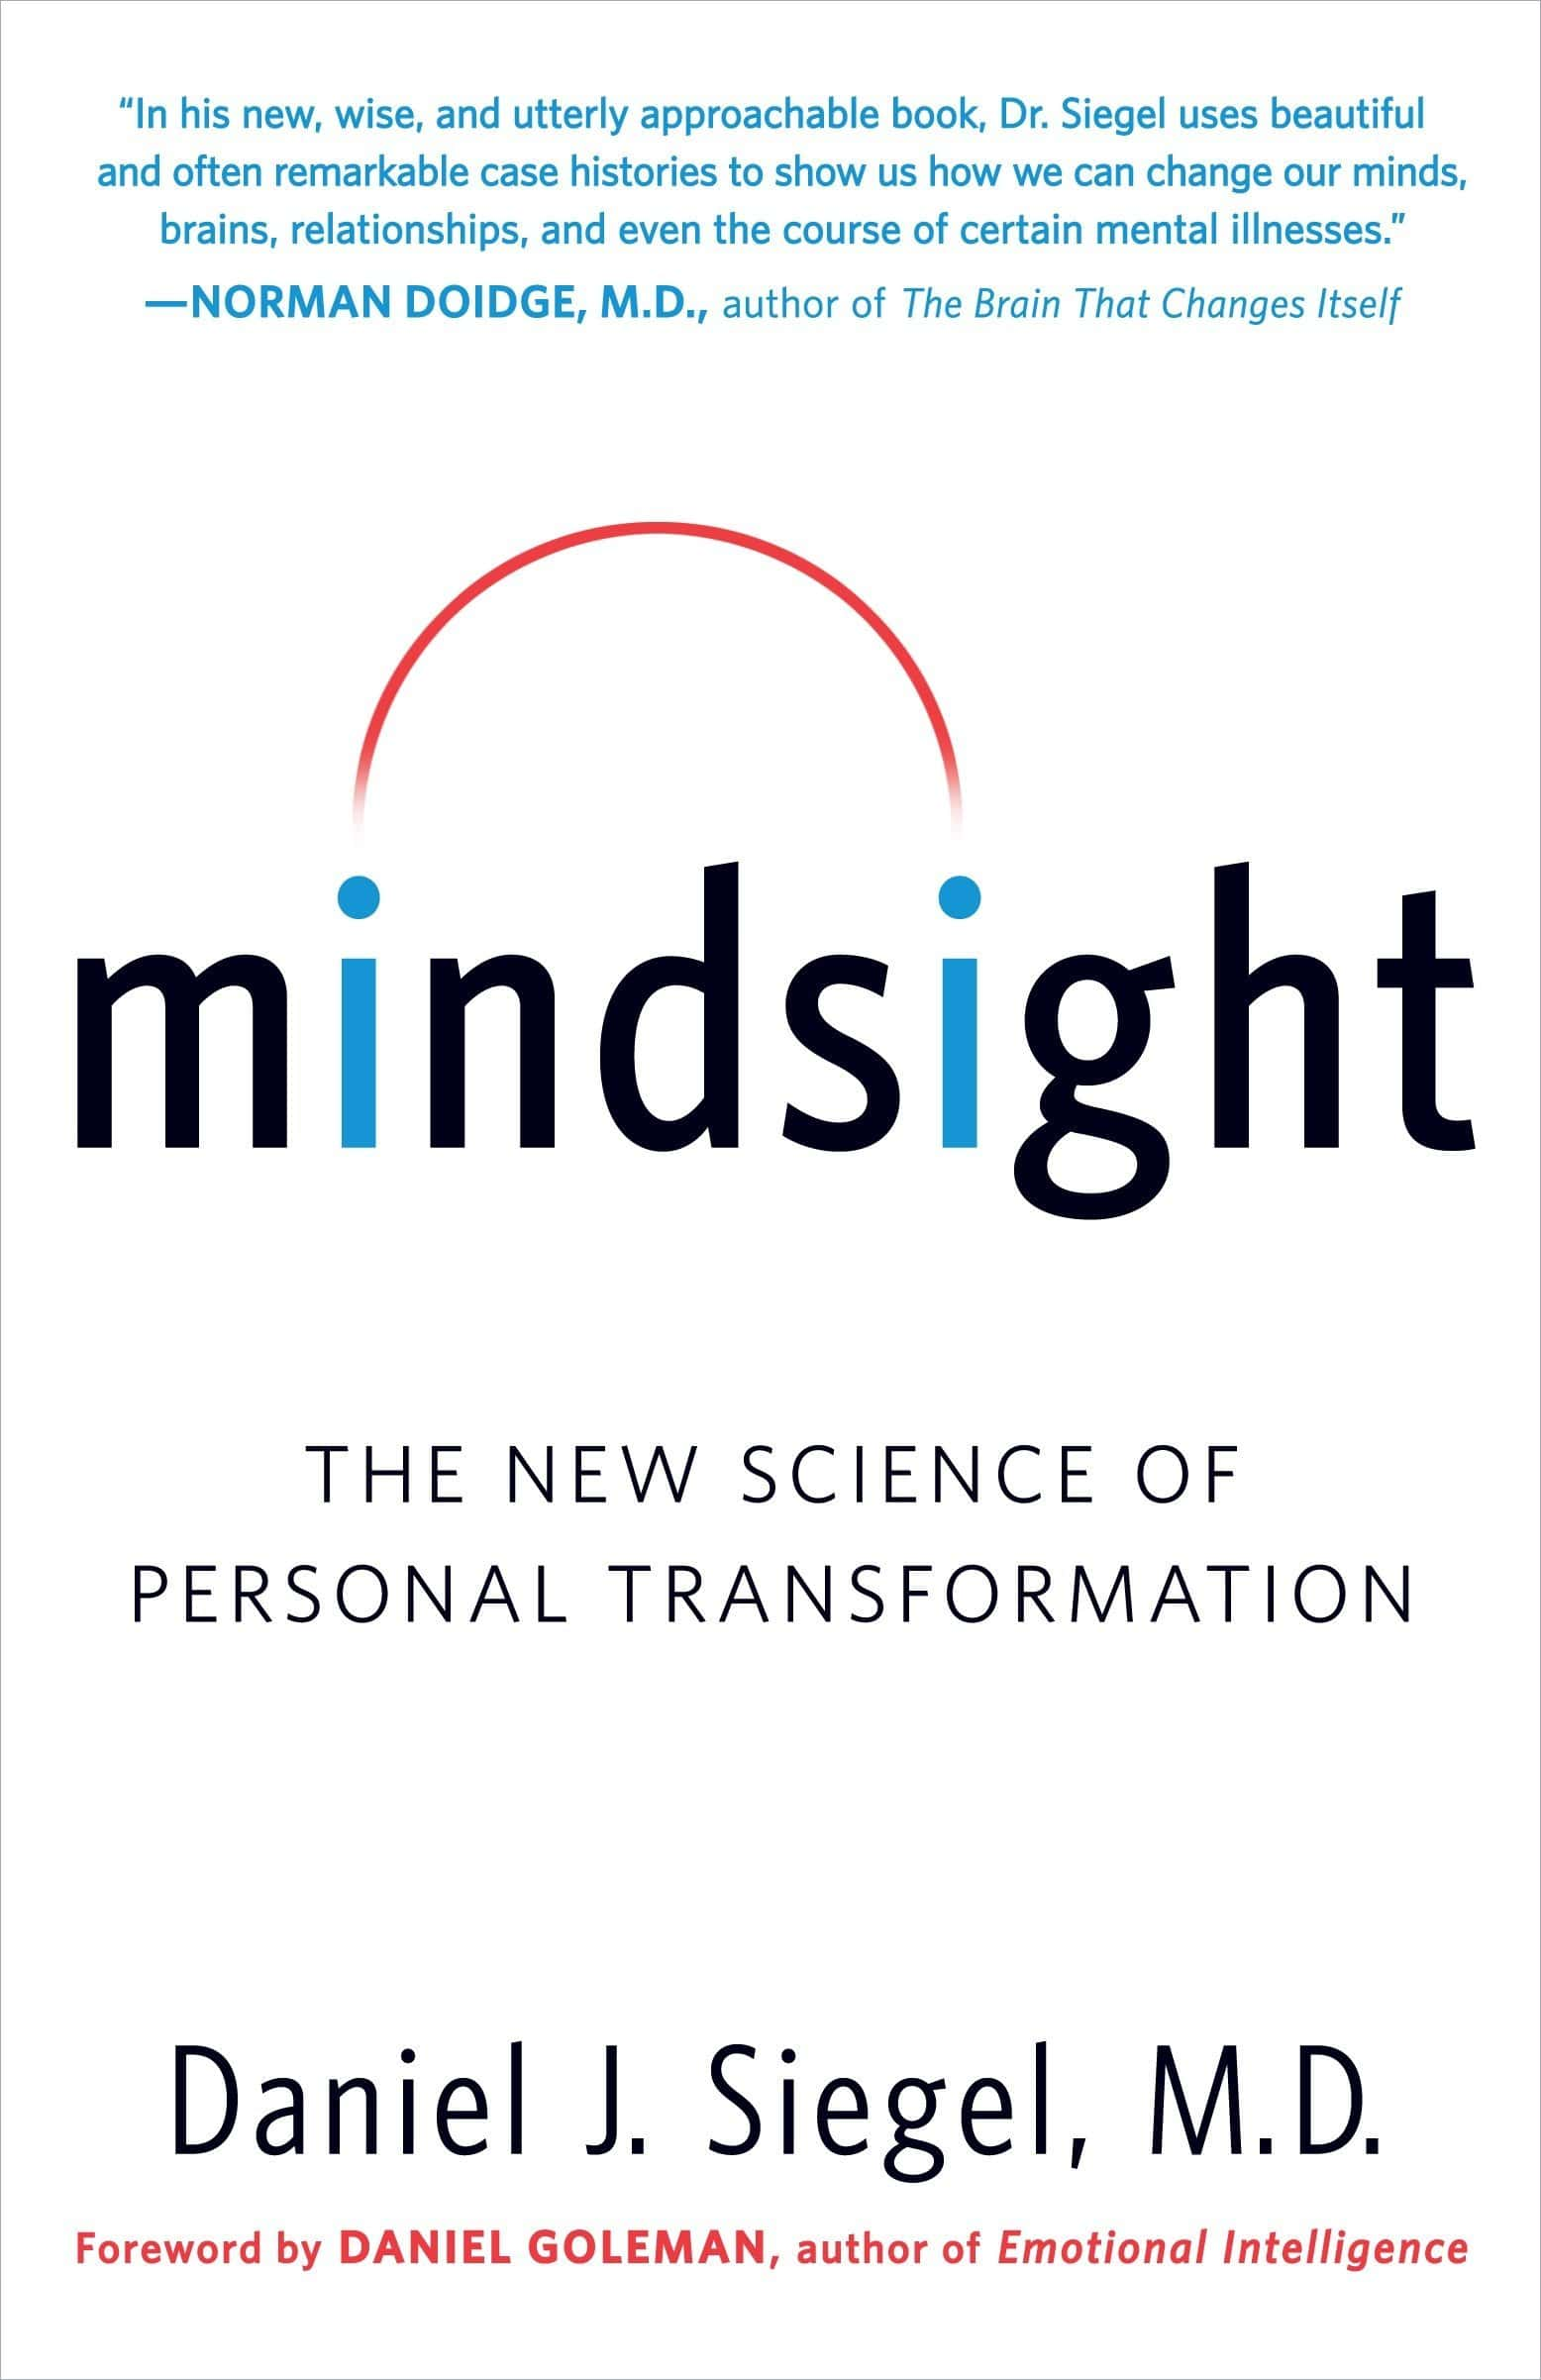 The New Science of Personal Transformation